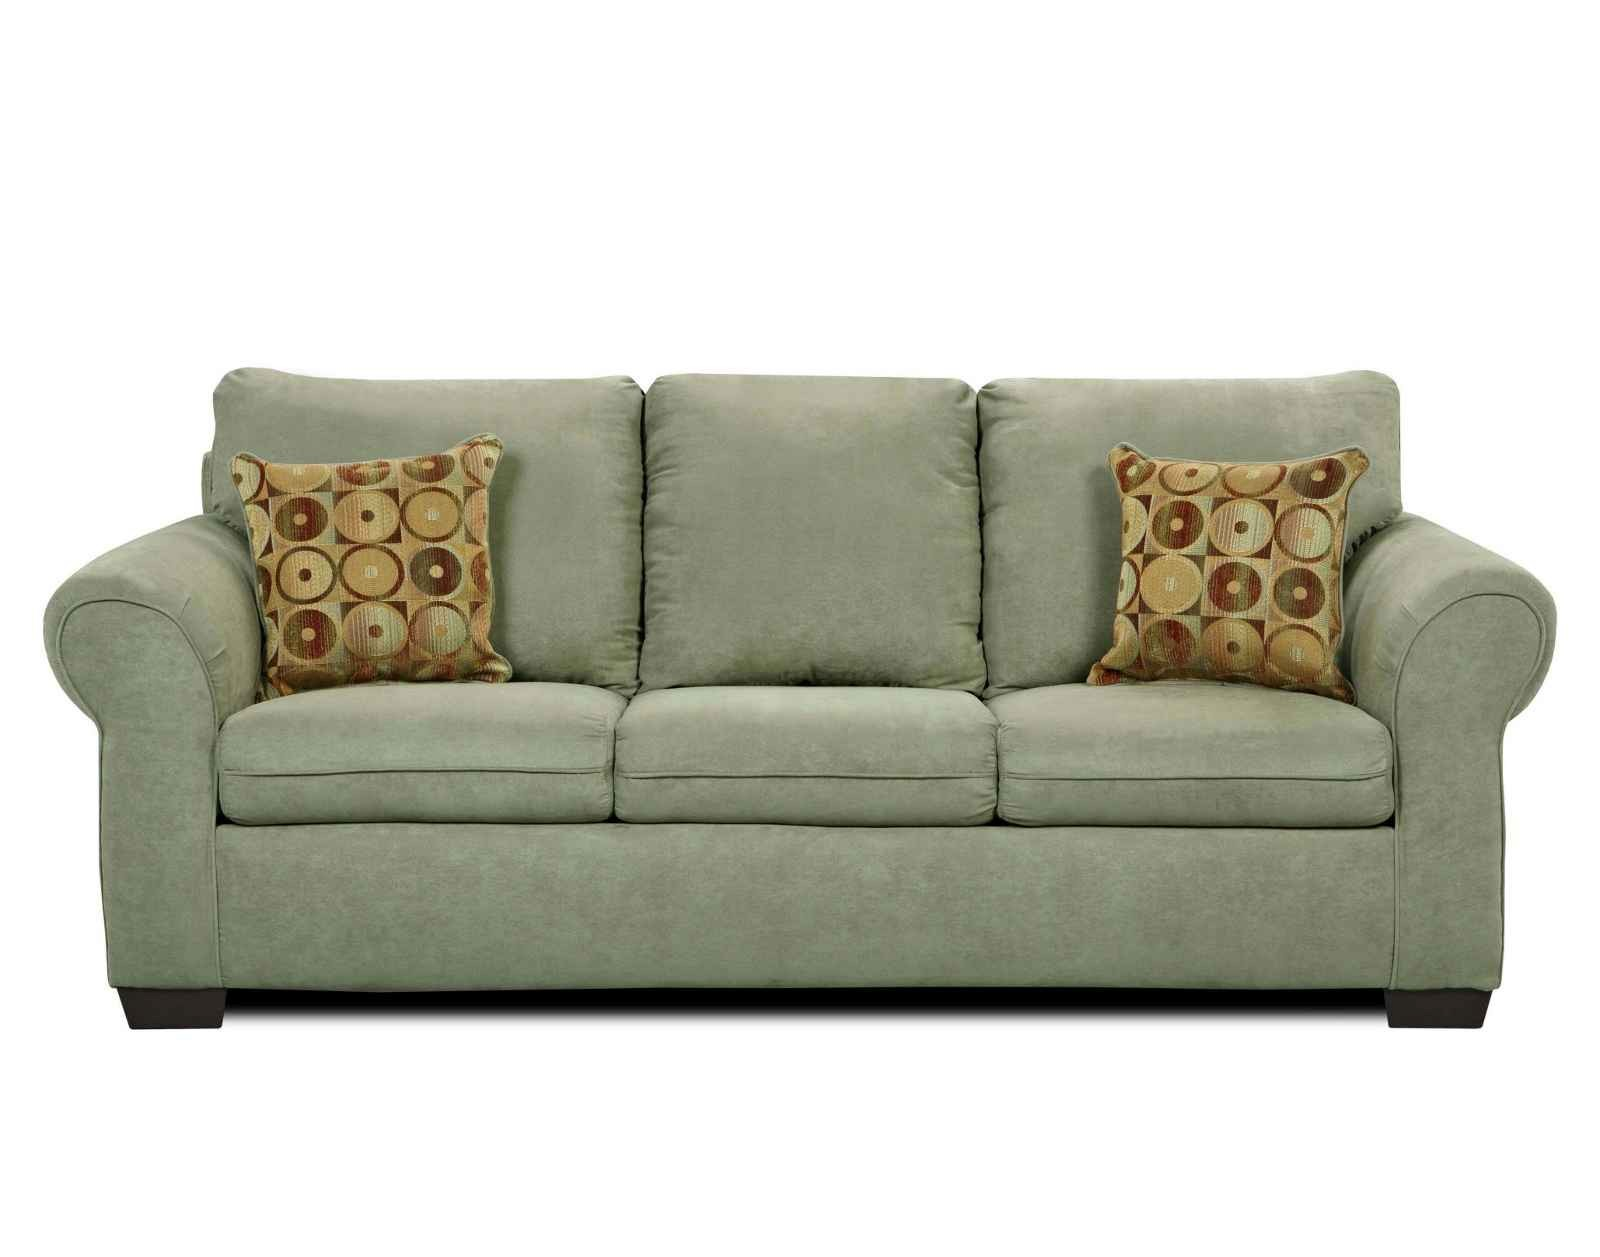 Cheap sofas for Sale Elegant Cheap sofas for Sale Interior4you Layout